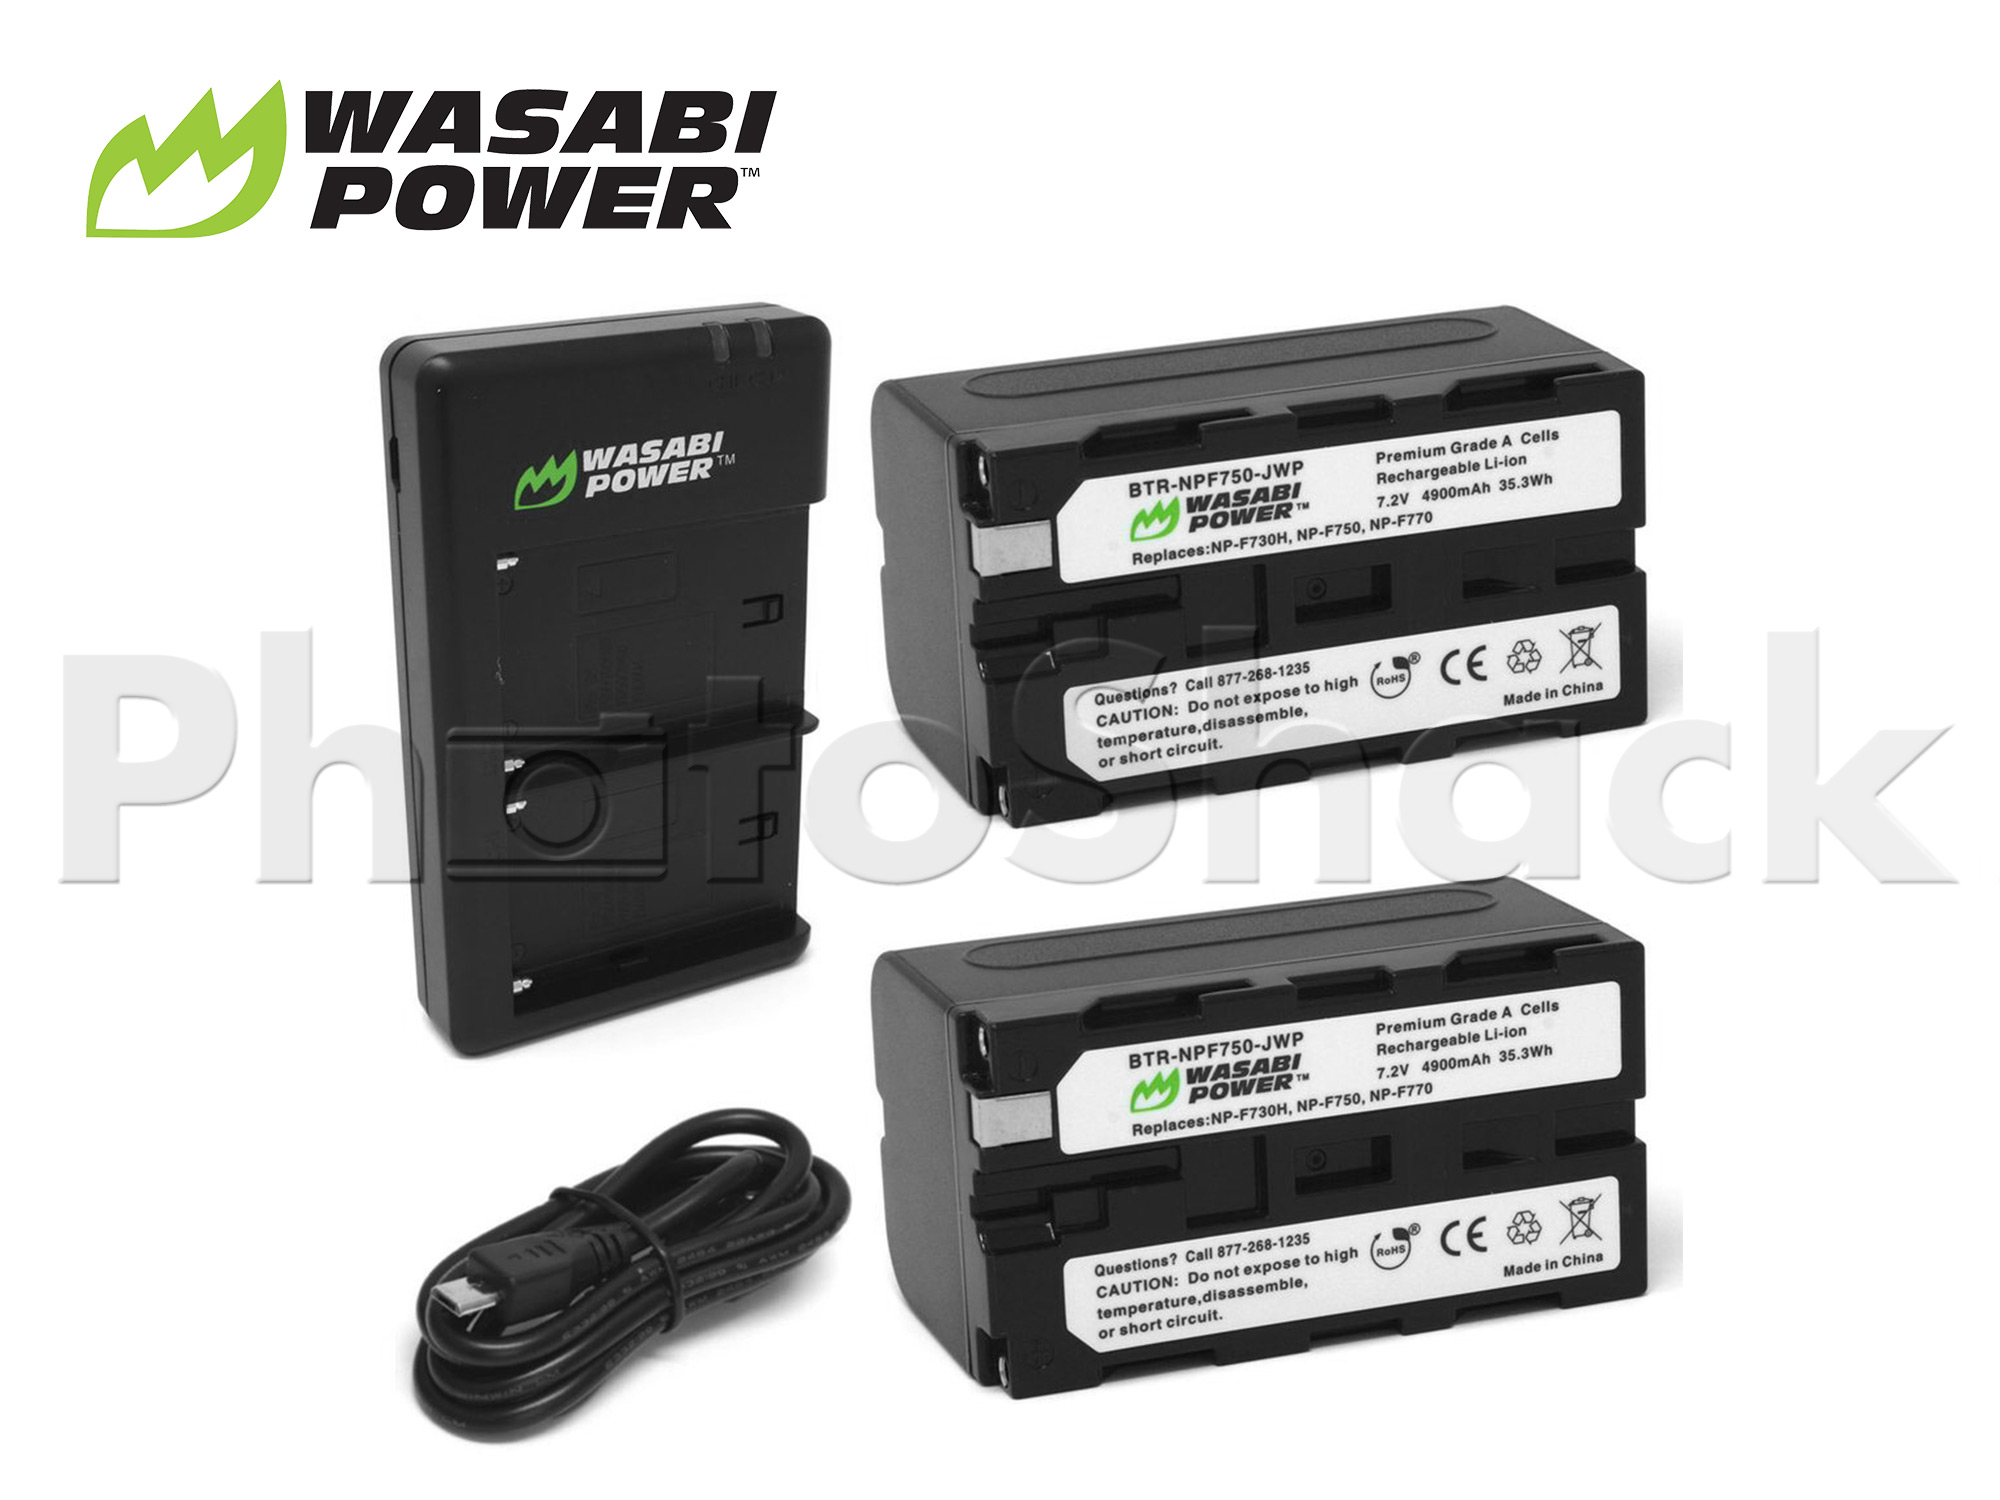 NP-F750 Battery for Sony & Blackmagic (2 Pack + Dual Charger) - Wasabi Power